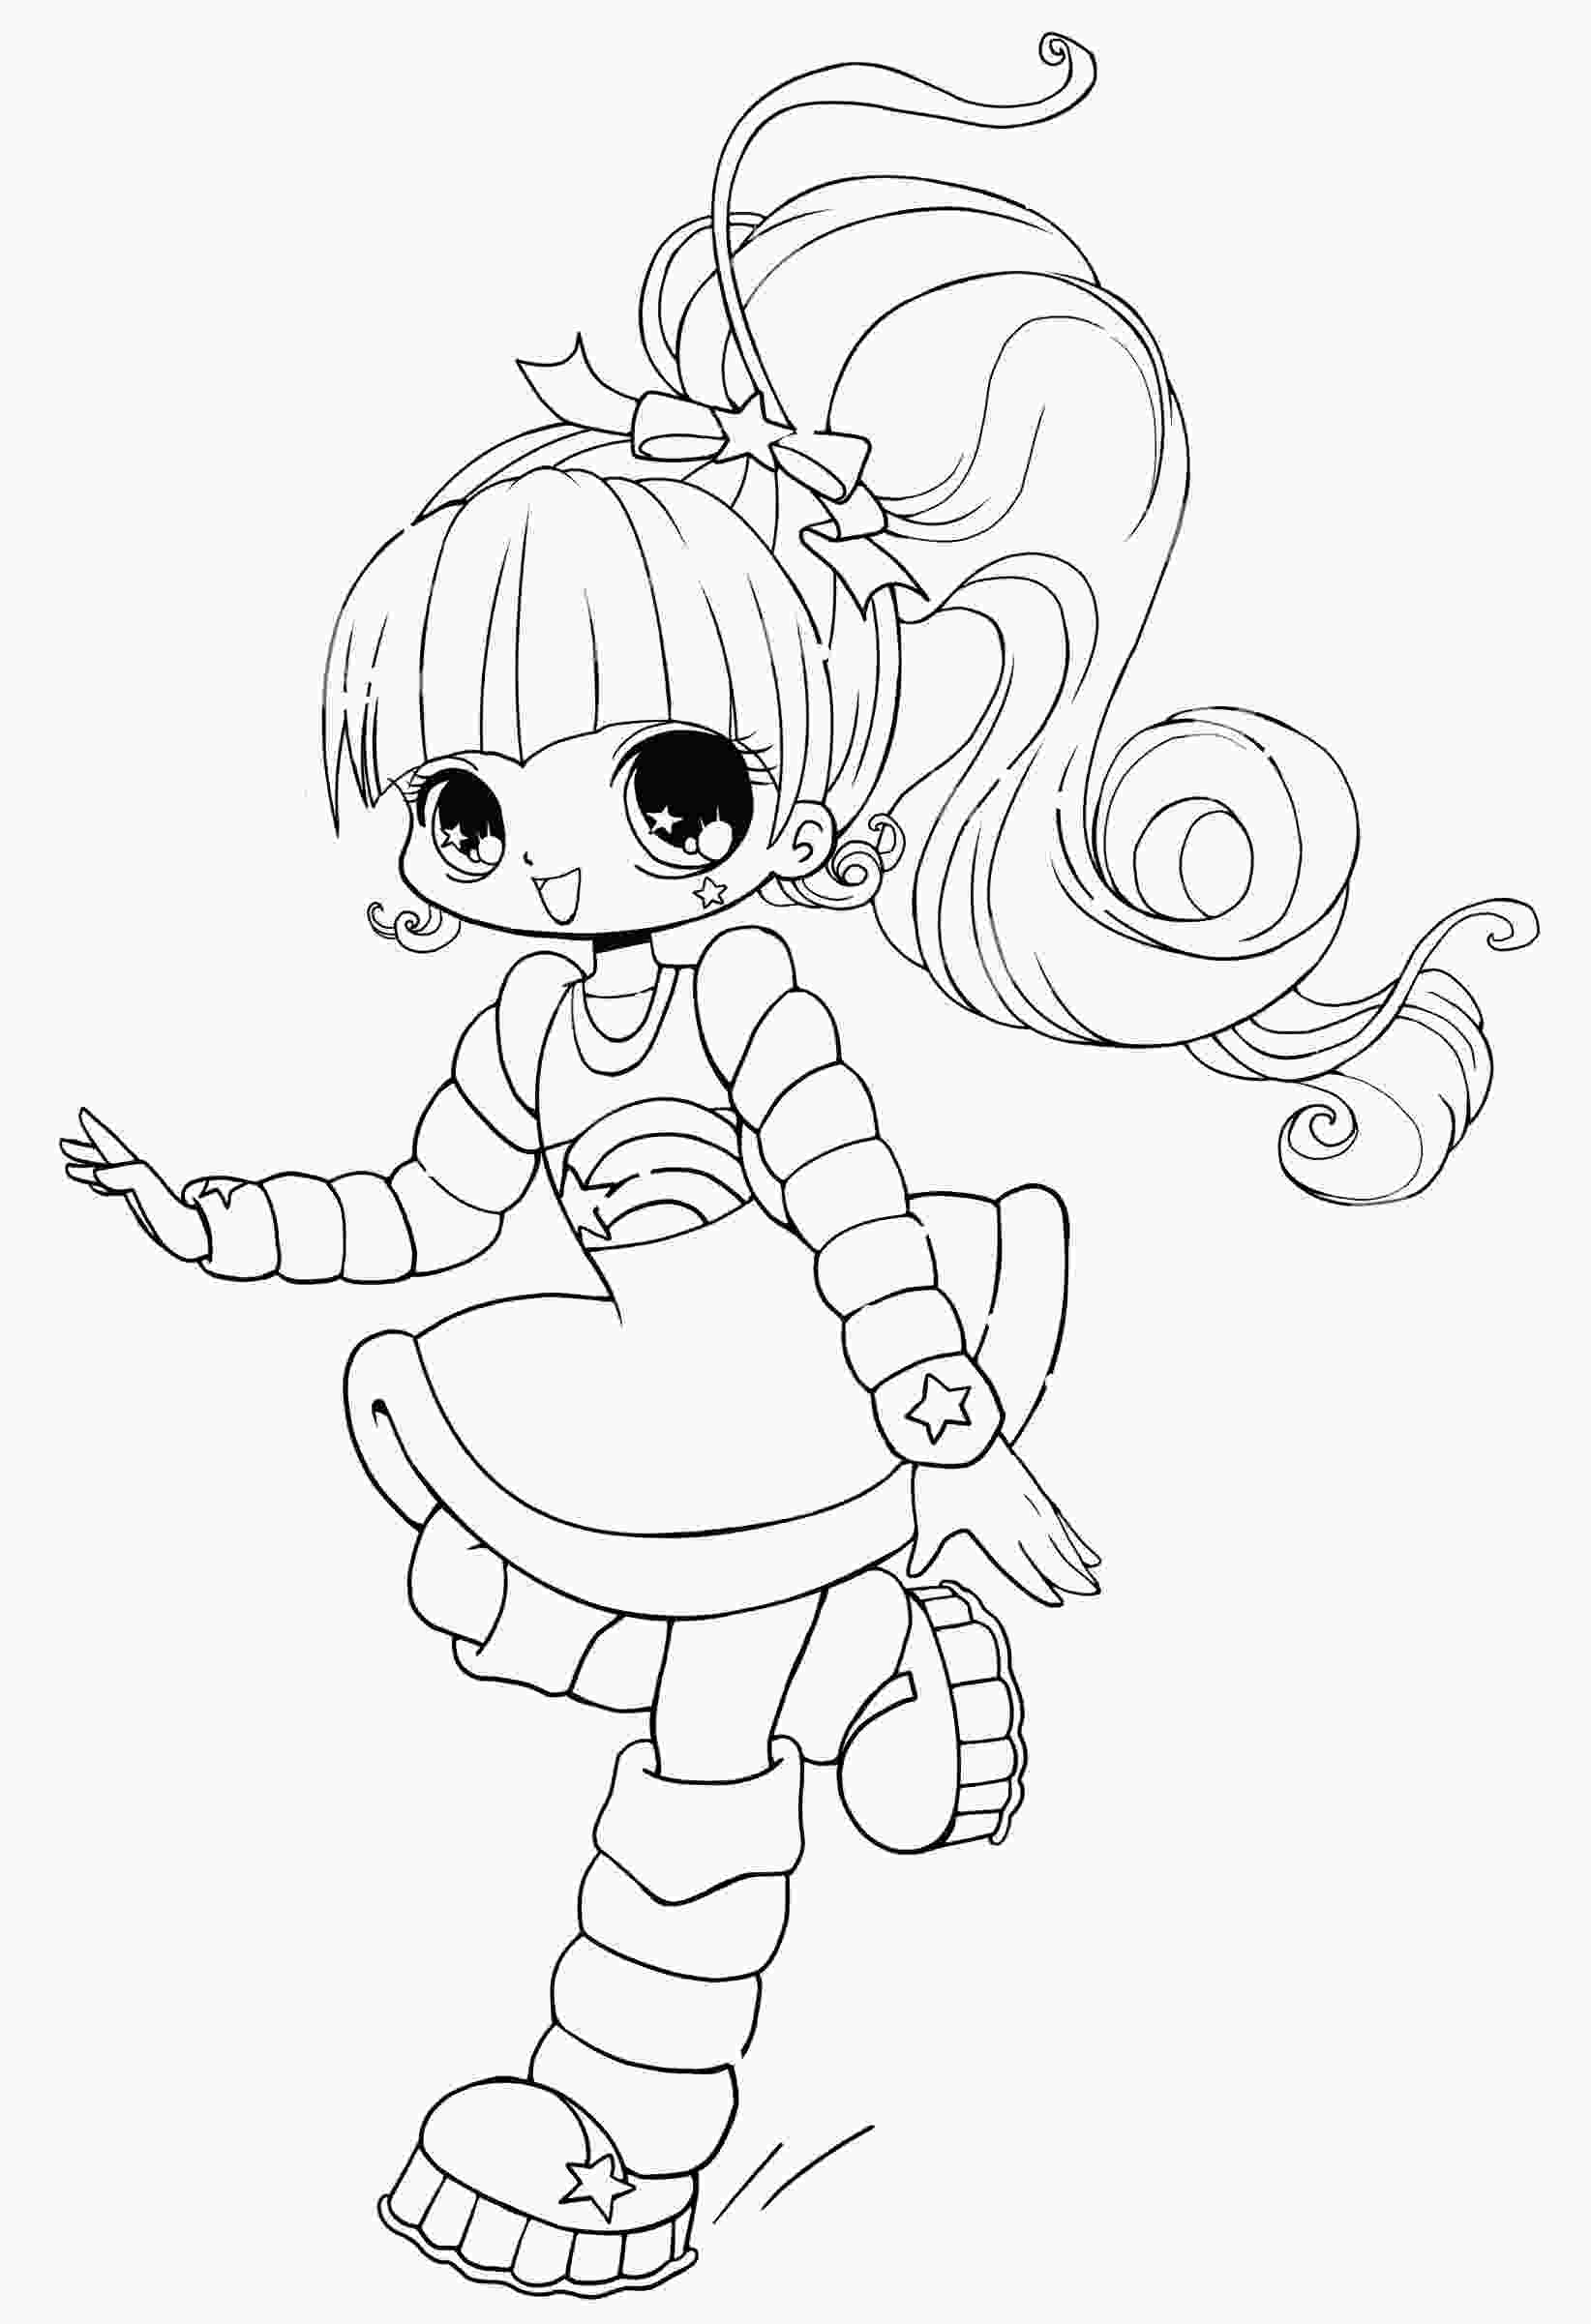 chibi anime coloring pages free printable chibi coloring pages for kids